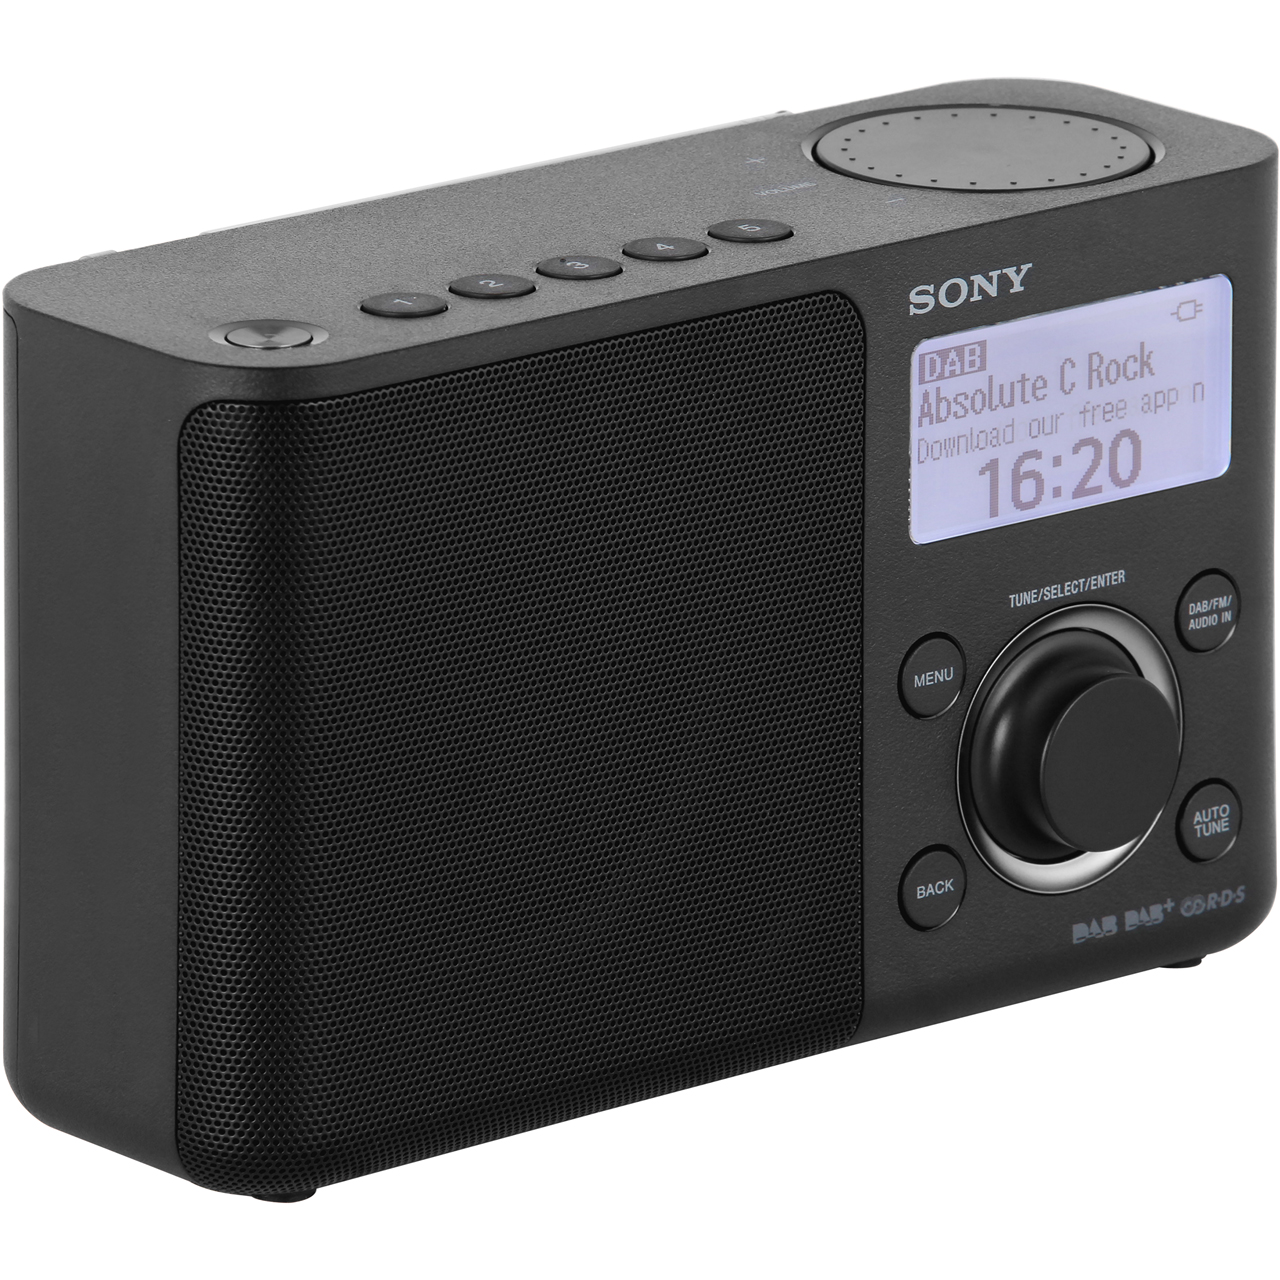 Xpr7550e Digital Analog Portable Radio Aah56jdn9ka1an Manual Guide